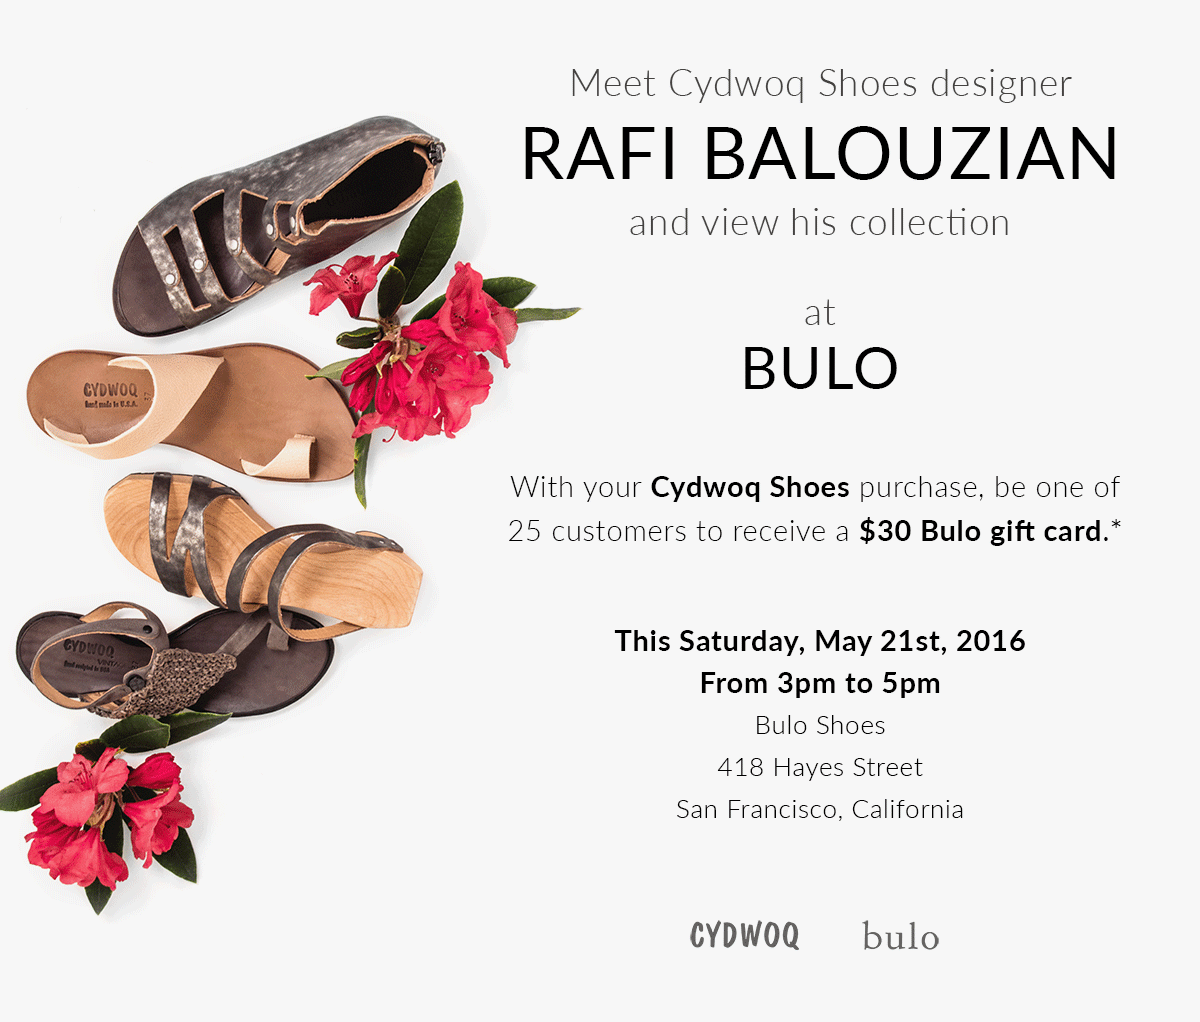 Meet Cydwoq Shoes designer Rafi Balouzian this Saturday May 21st